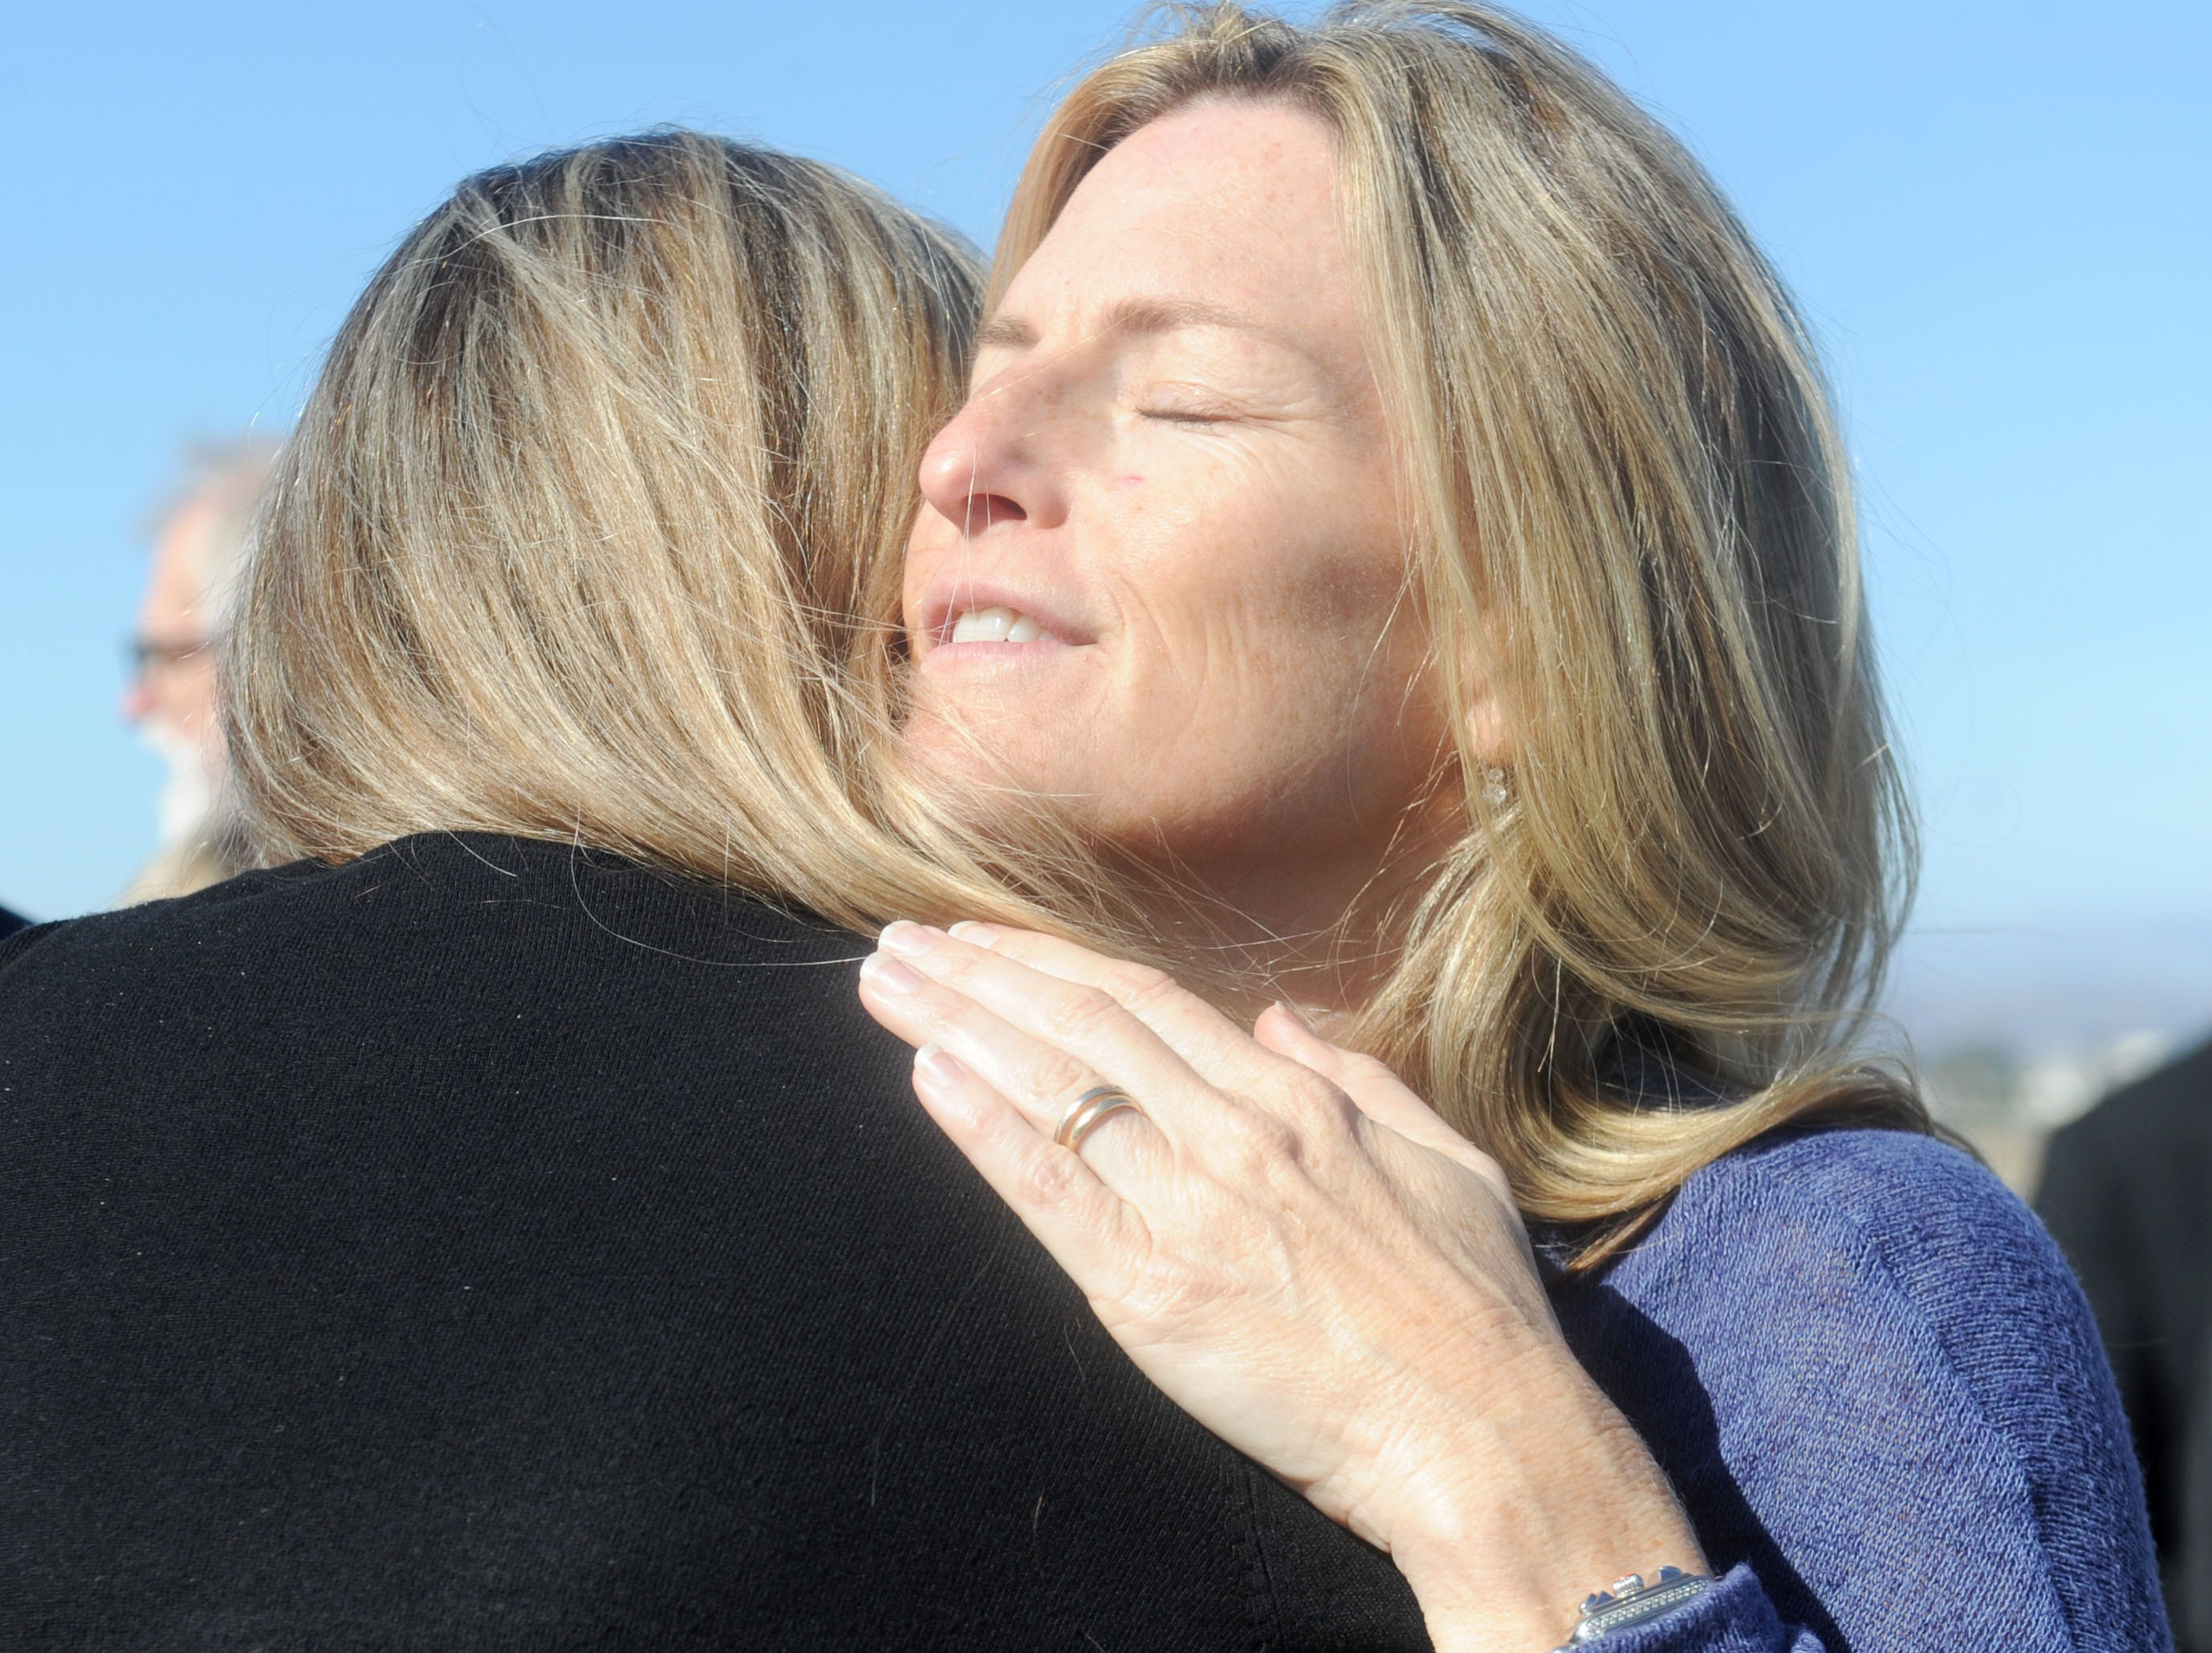 Ann McNamee hugs people at the memorial service for her husband, Todd McNamee, on Saturday at the Camarillo Airport. Todd McNamee was the Ventura County airports director.